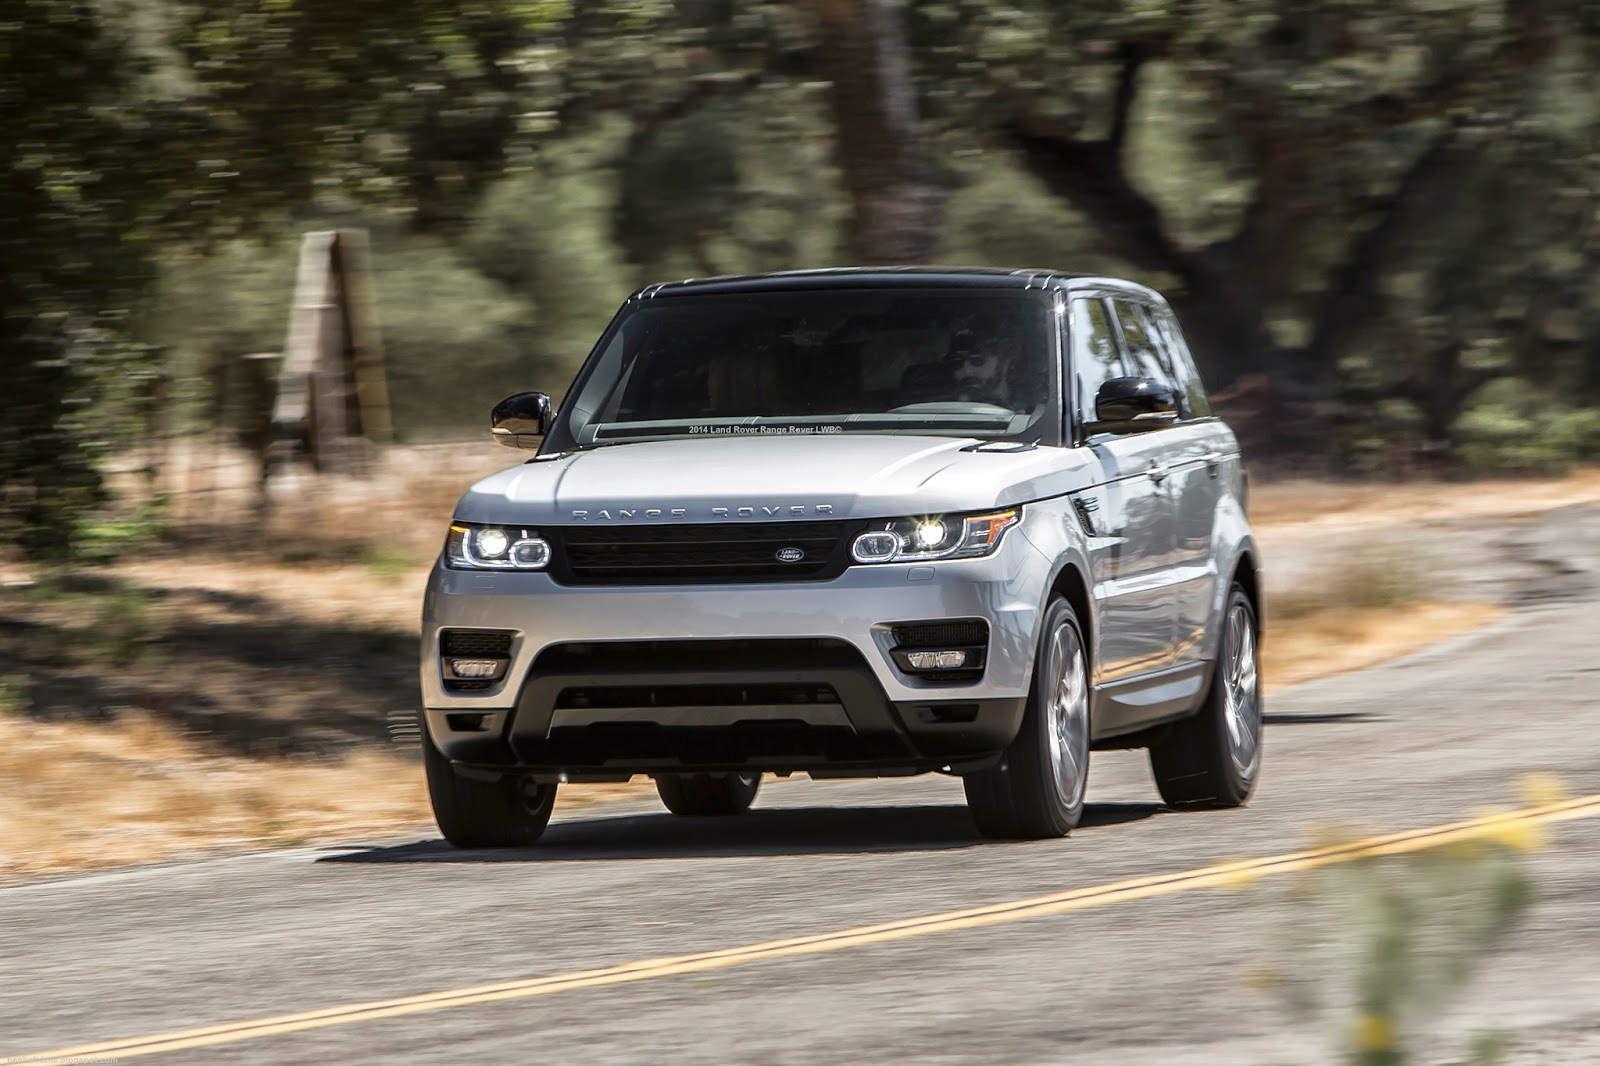 Best Range Rover Best Review Land Rover Range Rover Lwb 2014 Best Cars